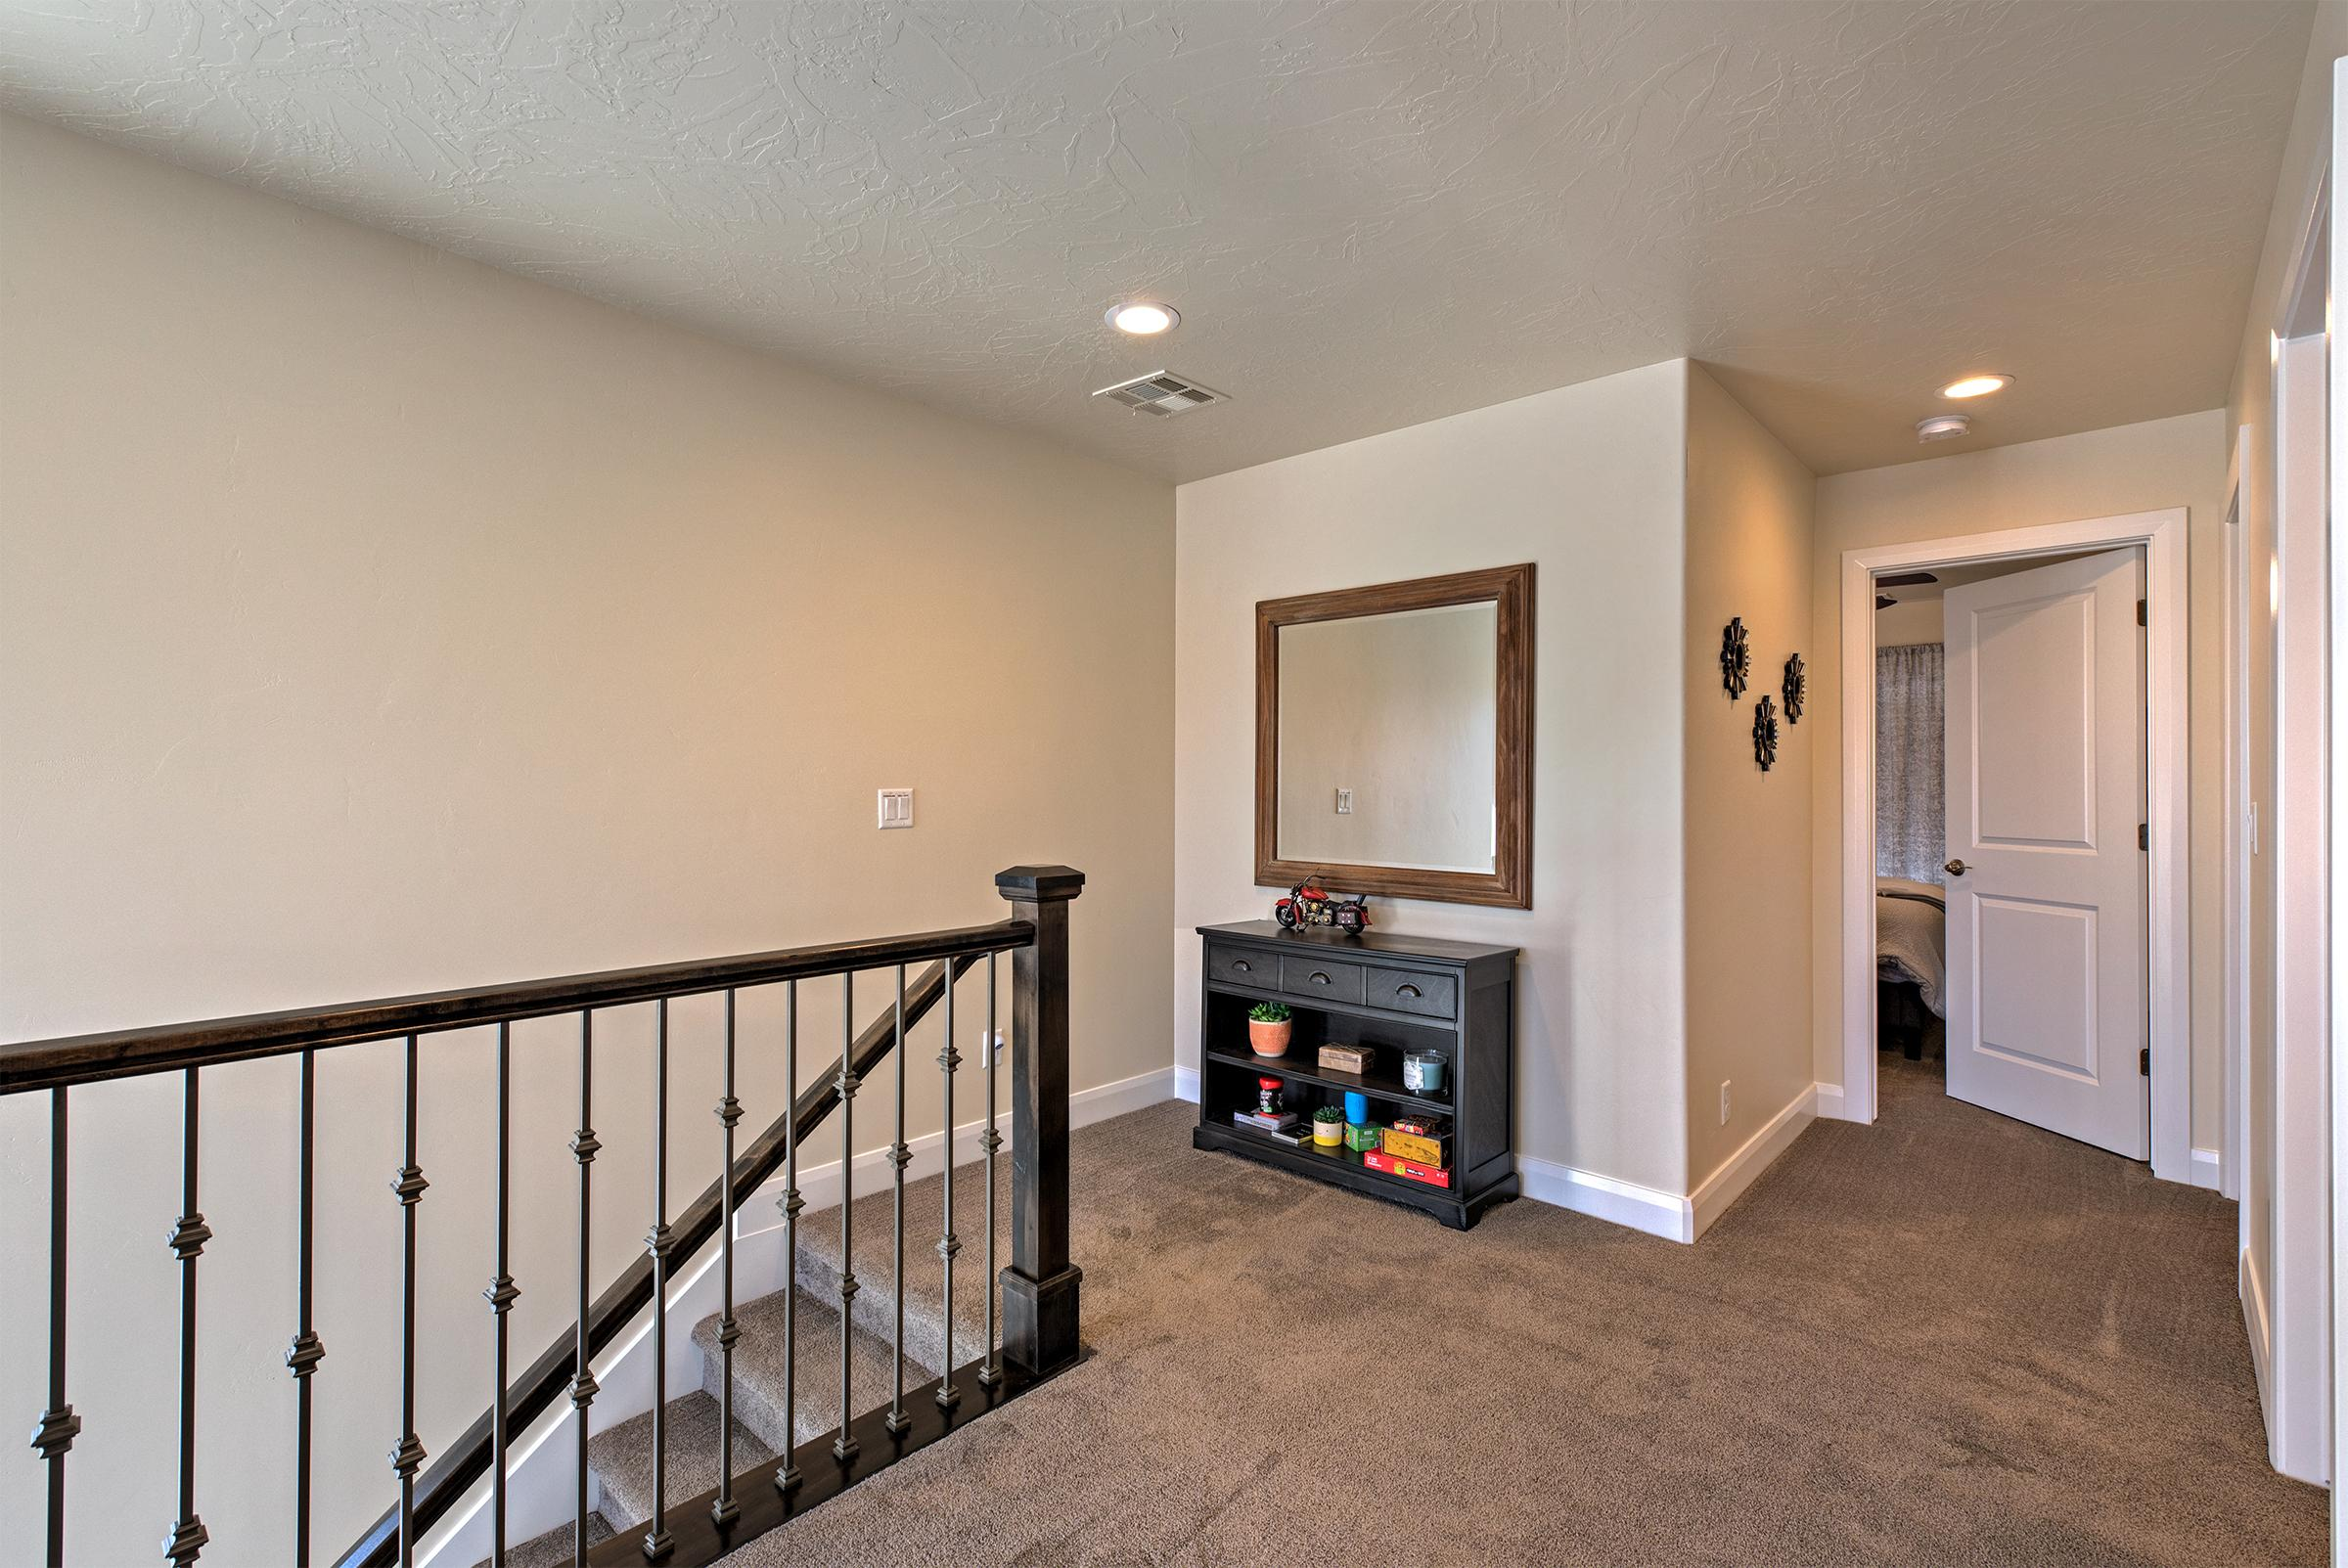 The Upstairs Landing leads to the two upstairs bedrooms, family room, and front patio deck.